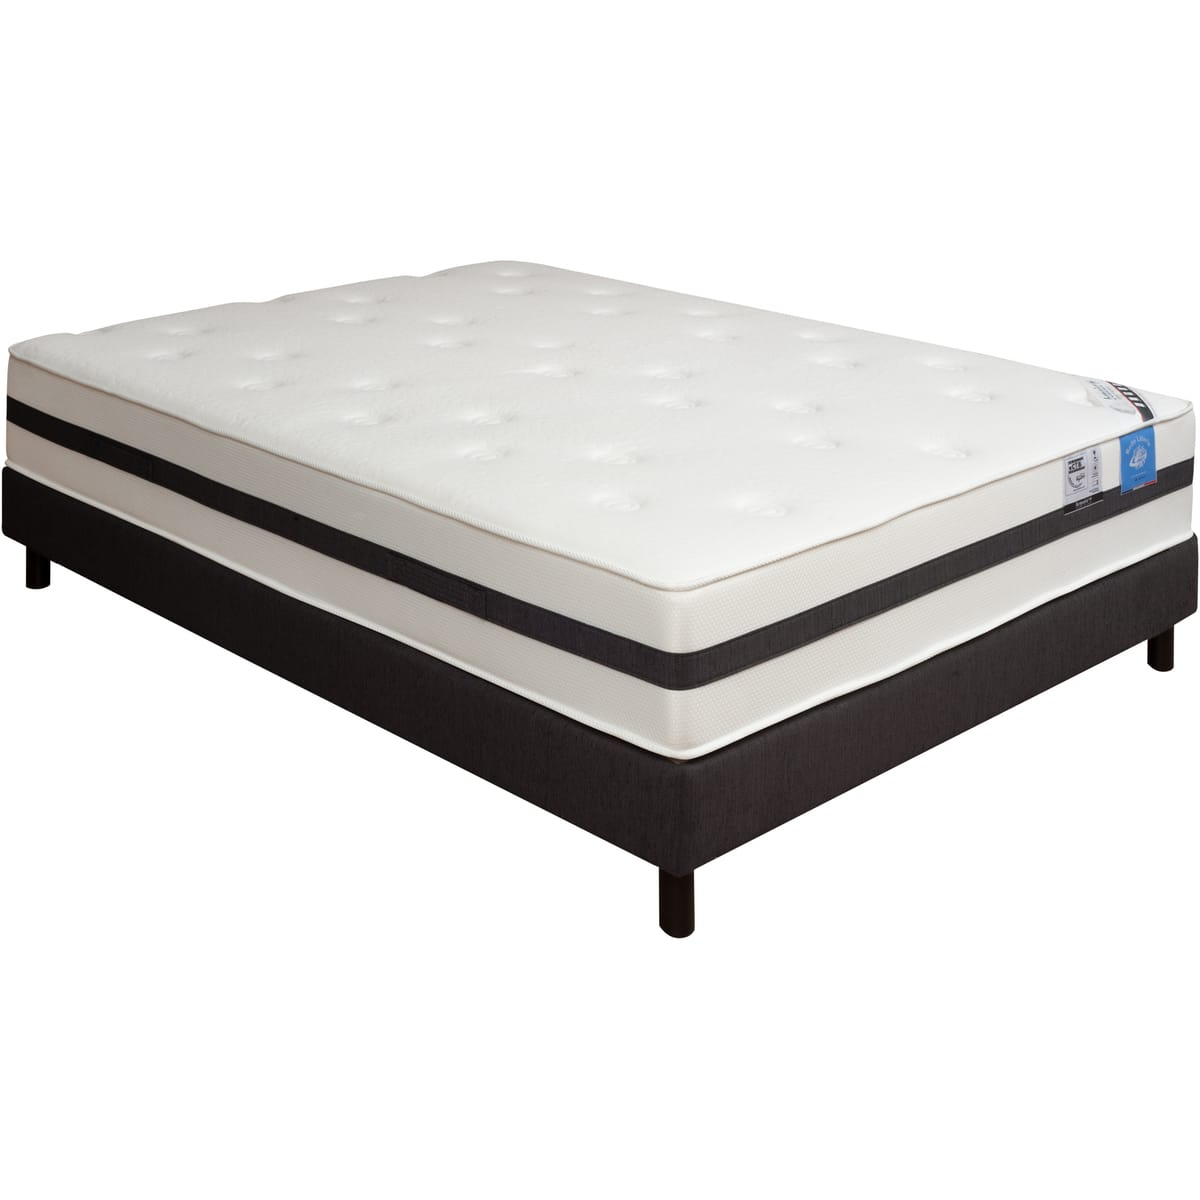 matelas mousse hr andalou 140x190cm belle literie benoist matelas auchan ventes pas. Black Bedroom Furniture Sets. Home Design Ideas